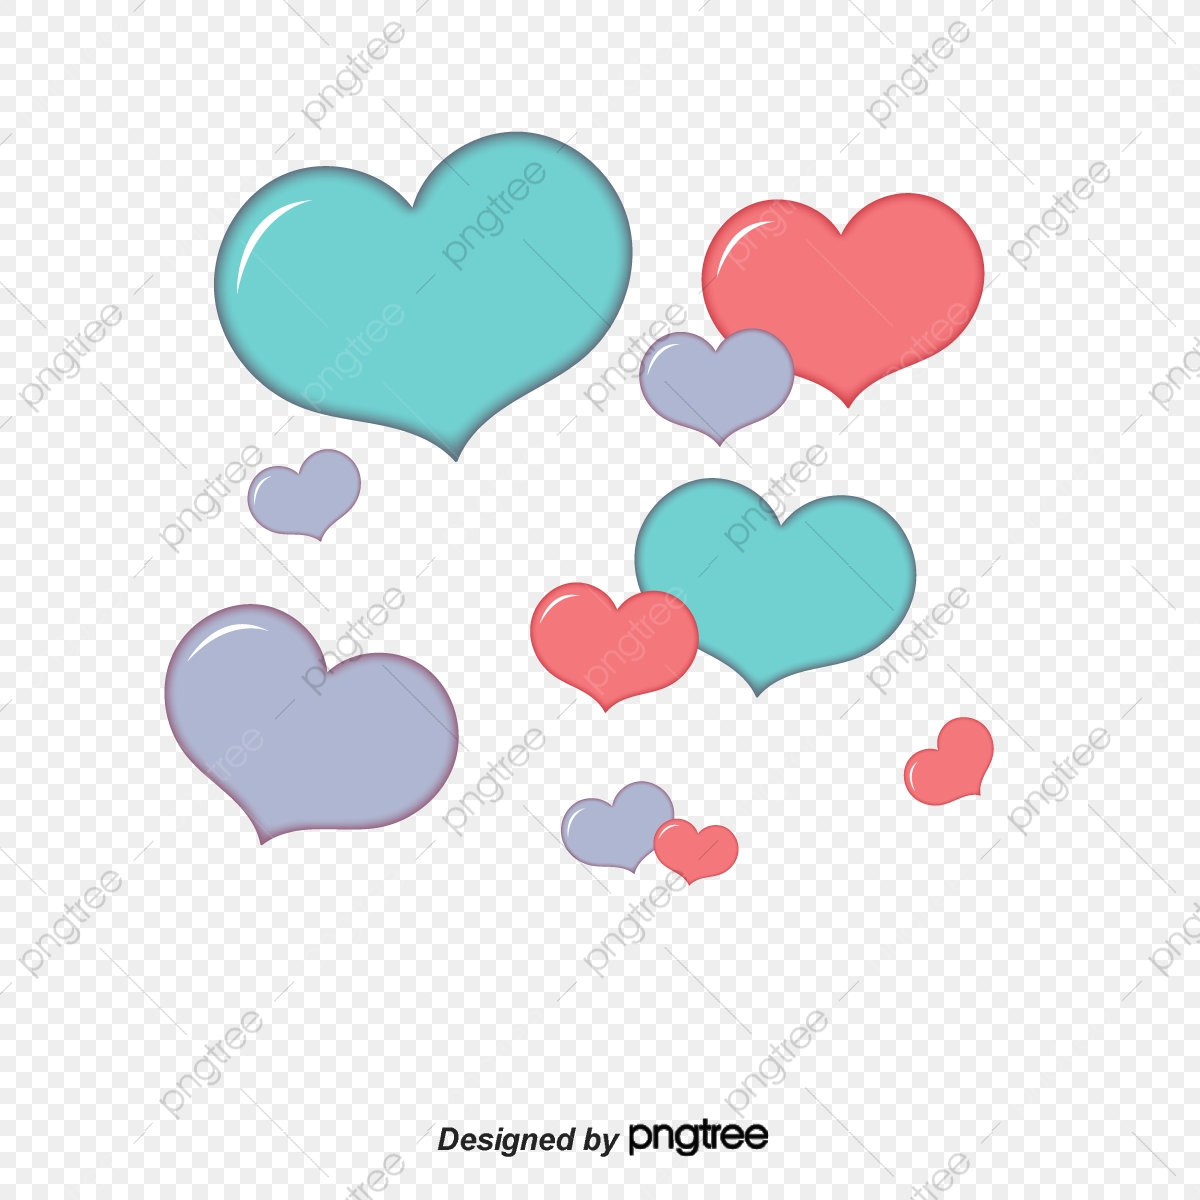 A Double Headed Frame, Frame Clipart, Two Hearts, An Arrow PNG.